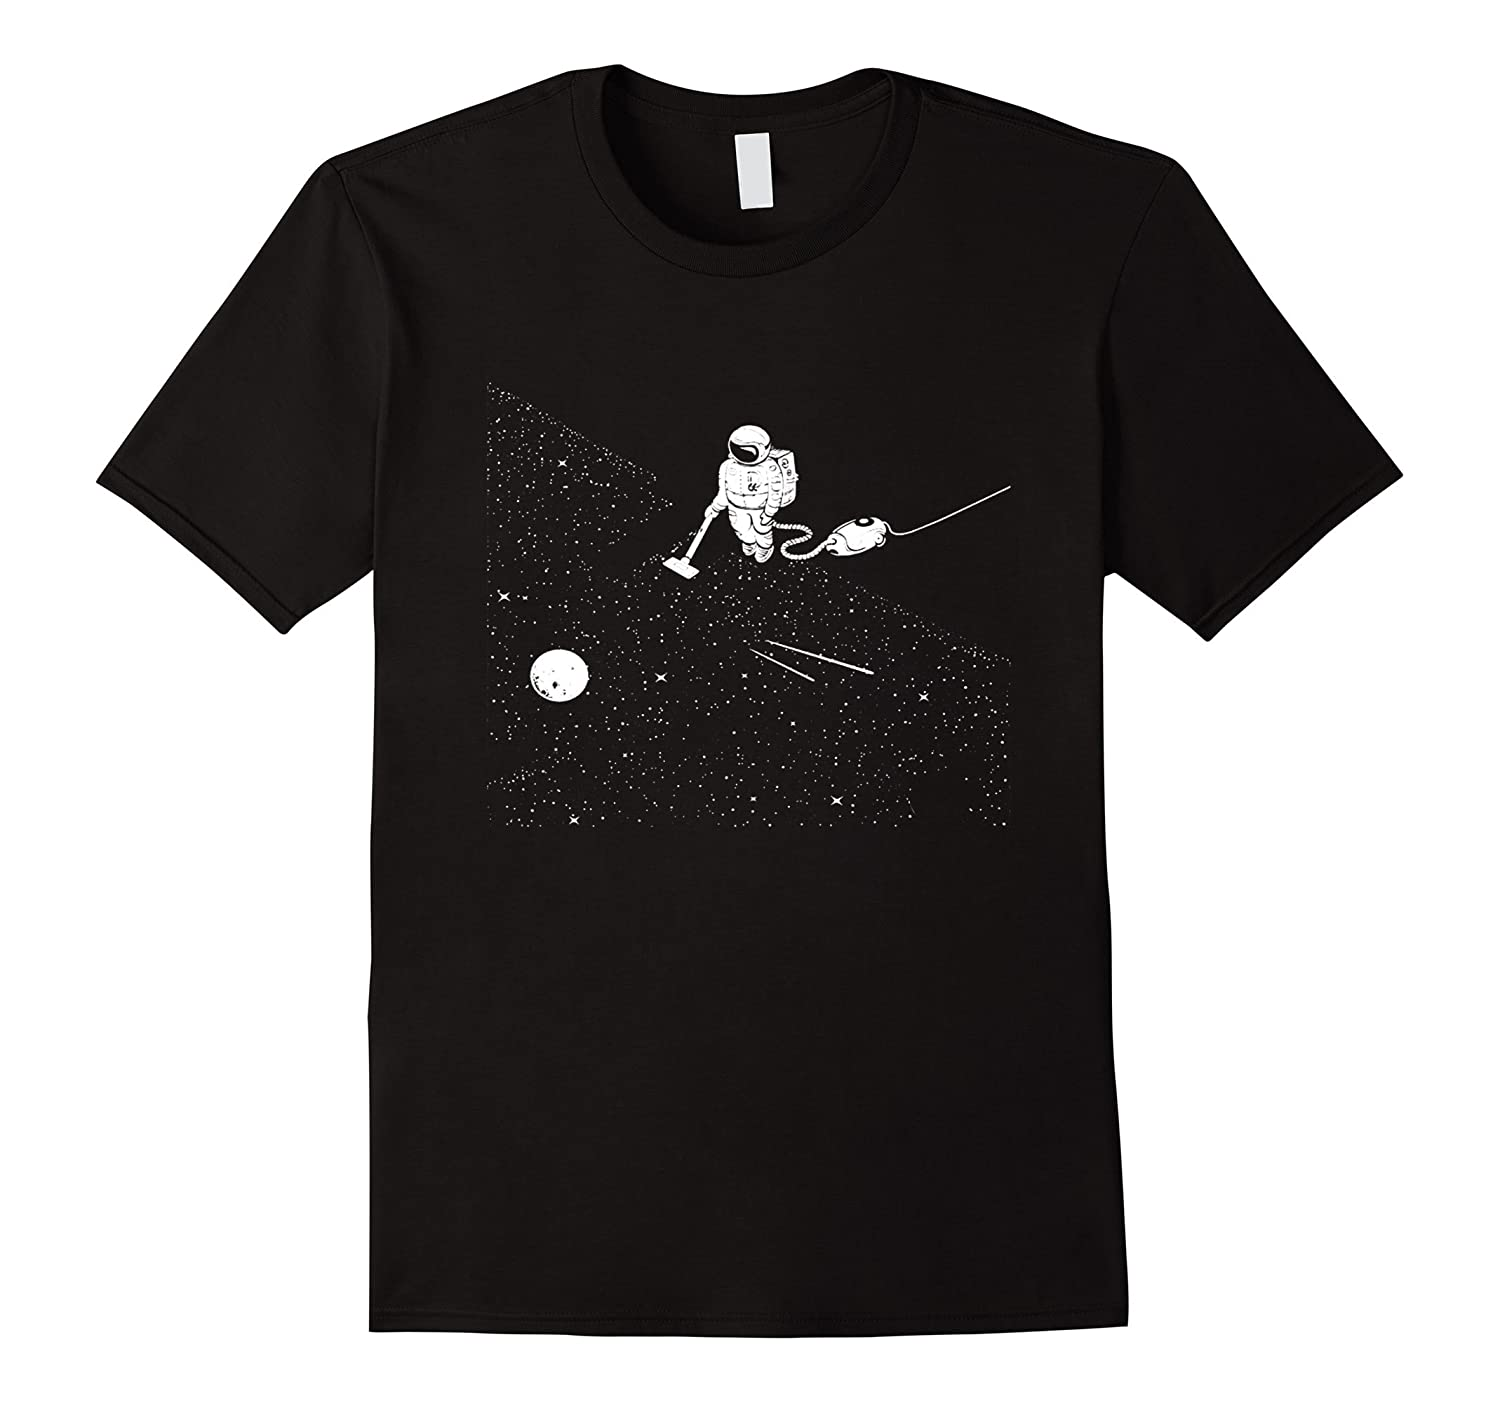 Astronaut vacuuming stars t shirt-RT